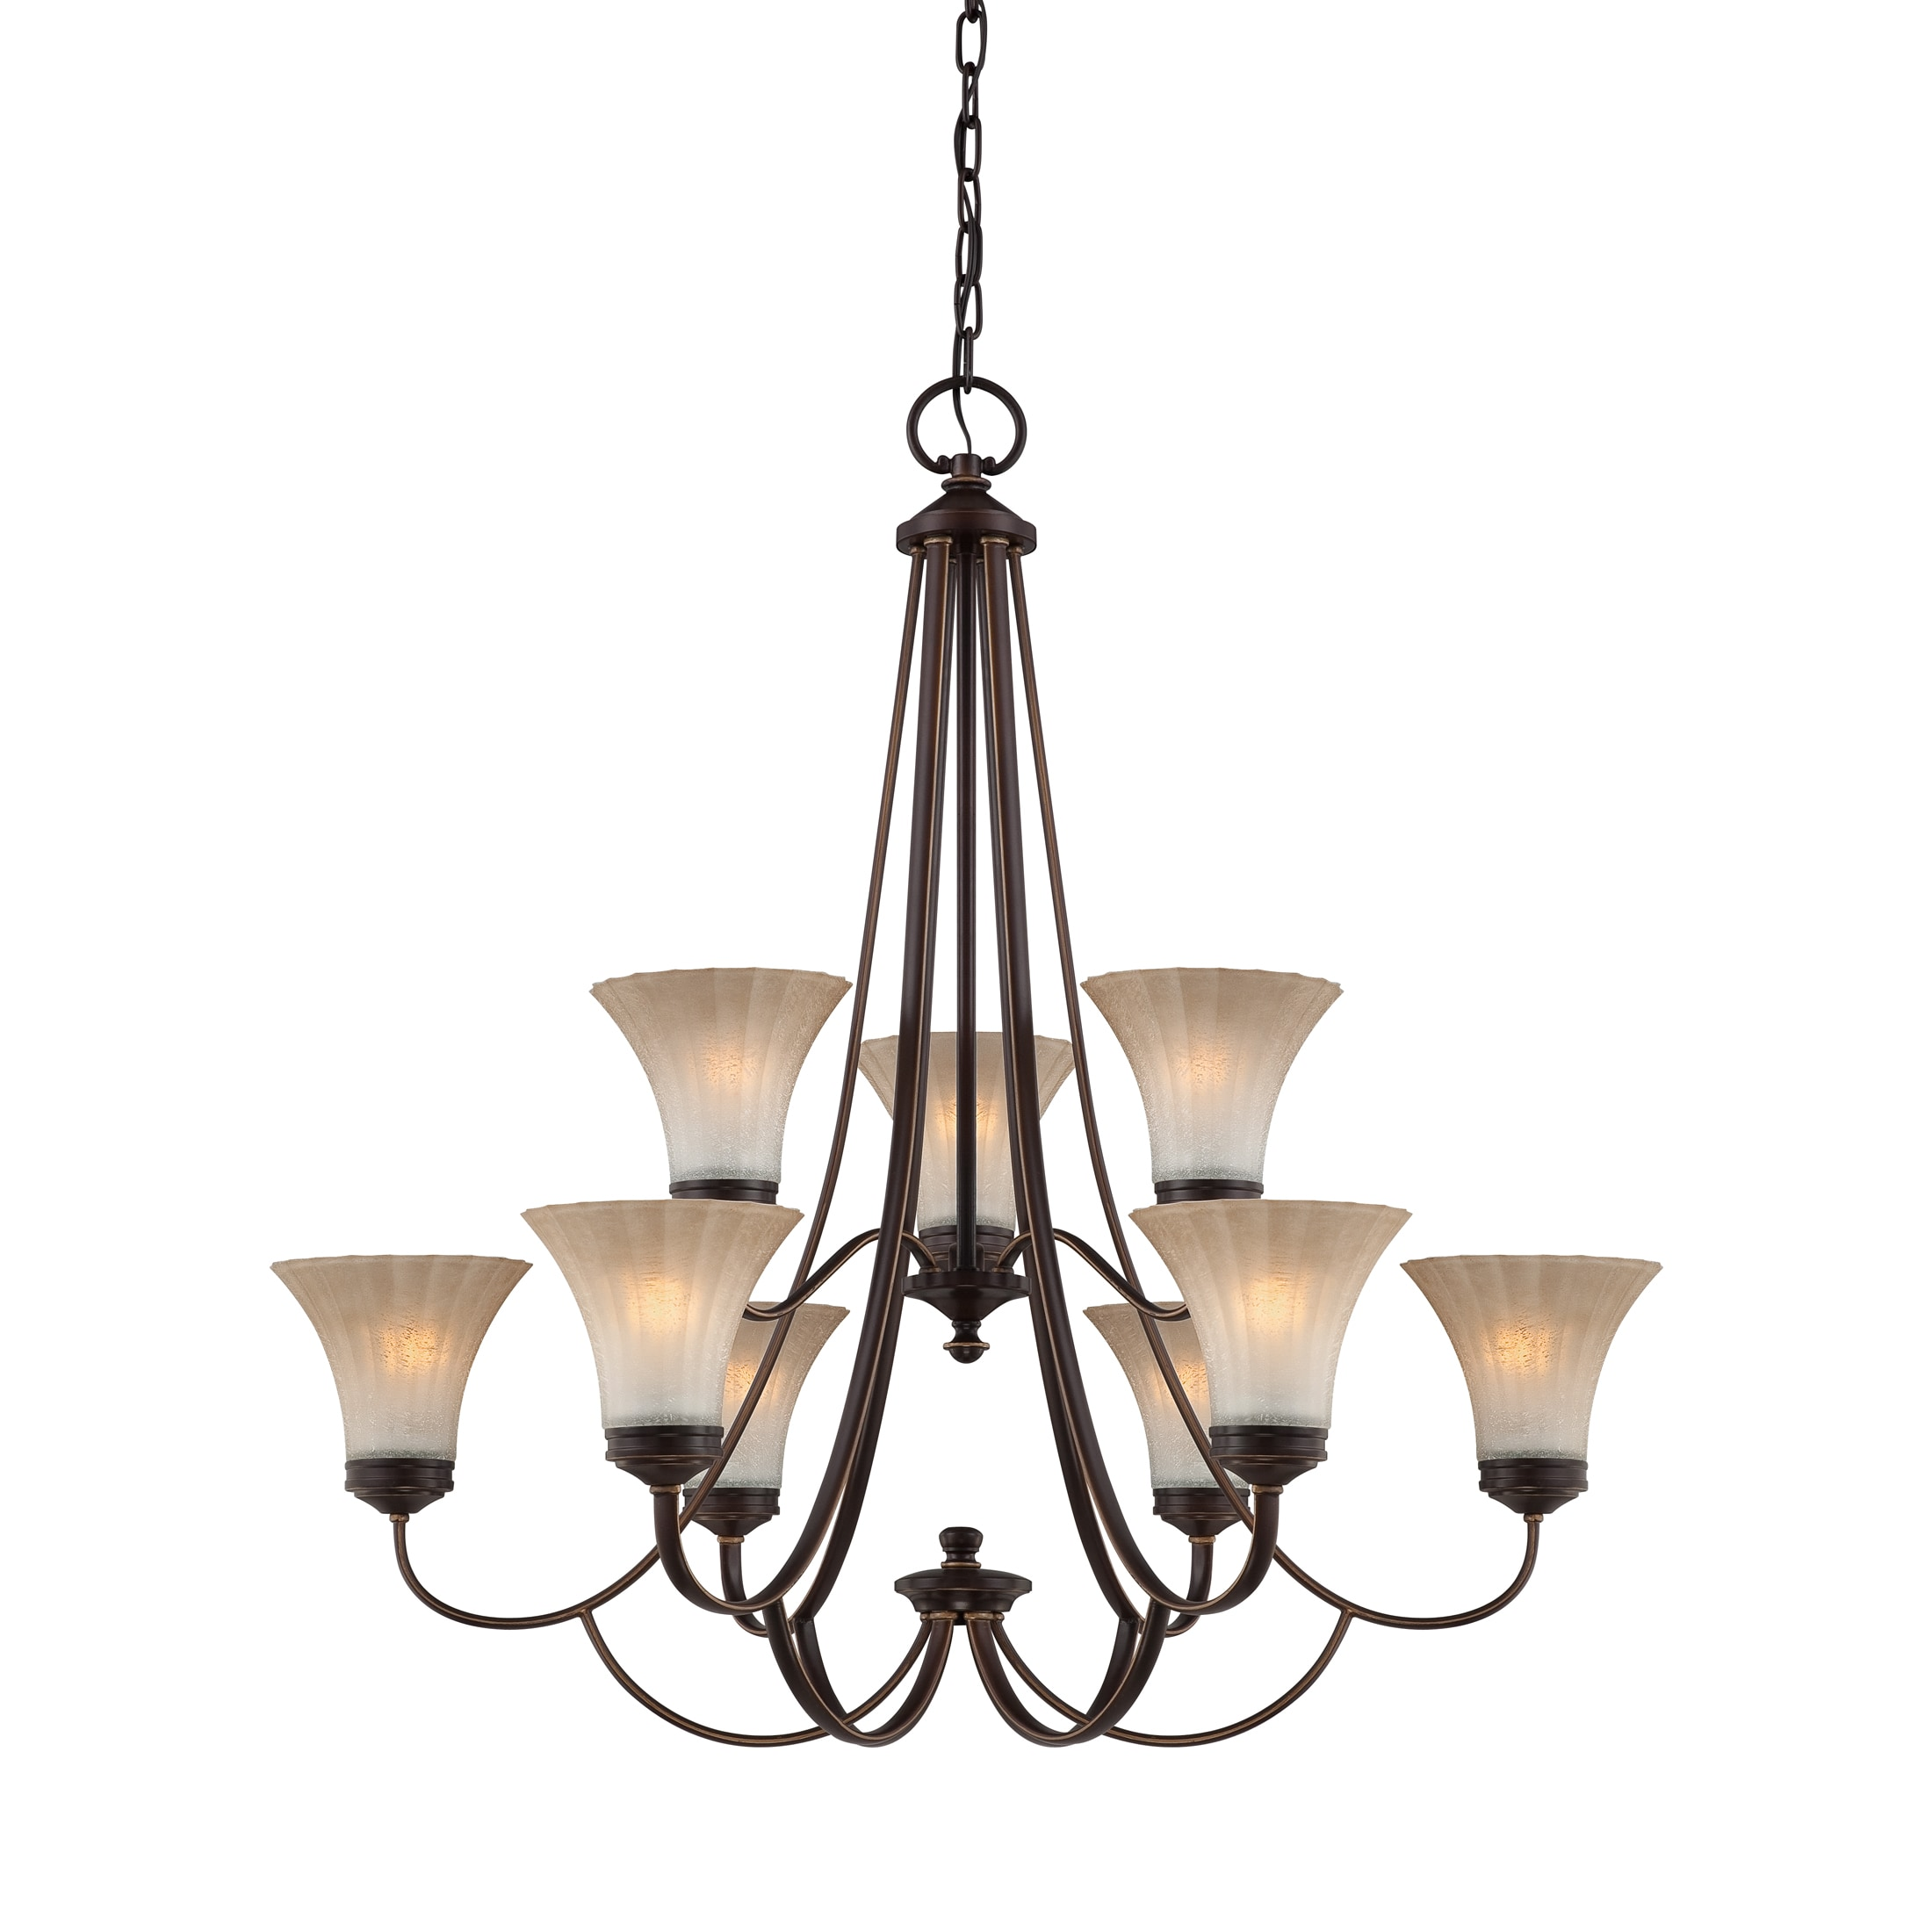 Quoizel 'Aliza' 9-light Chandelier